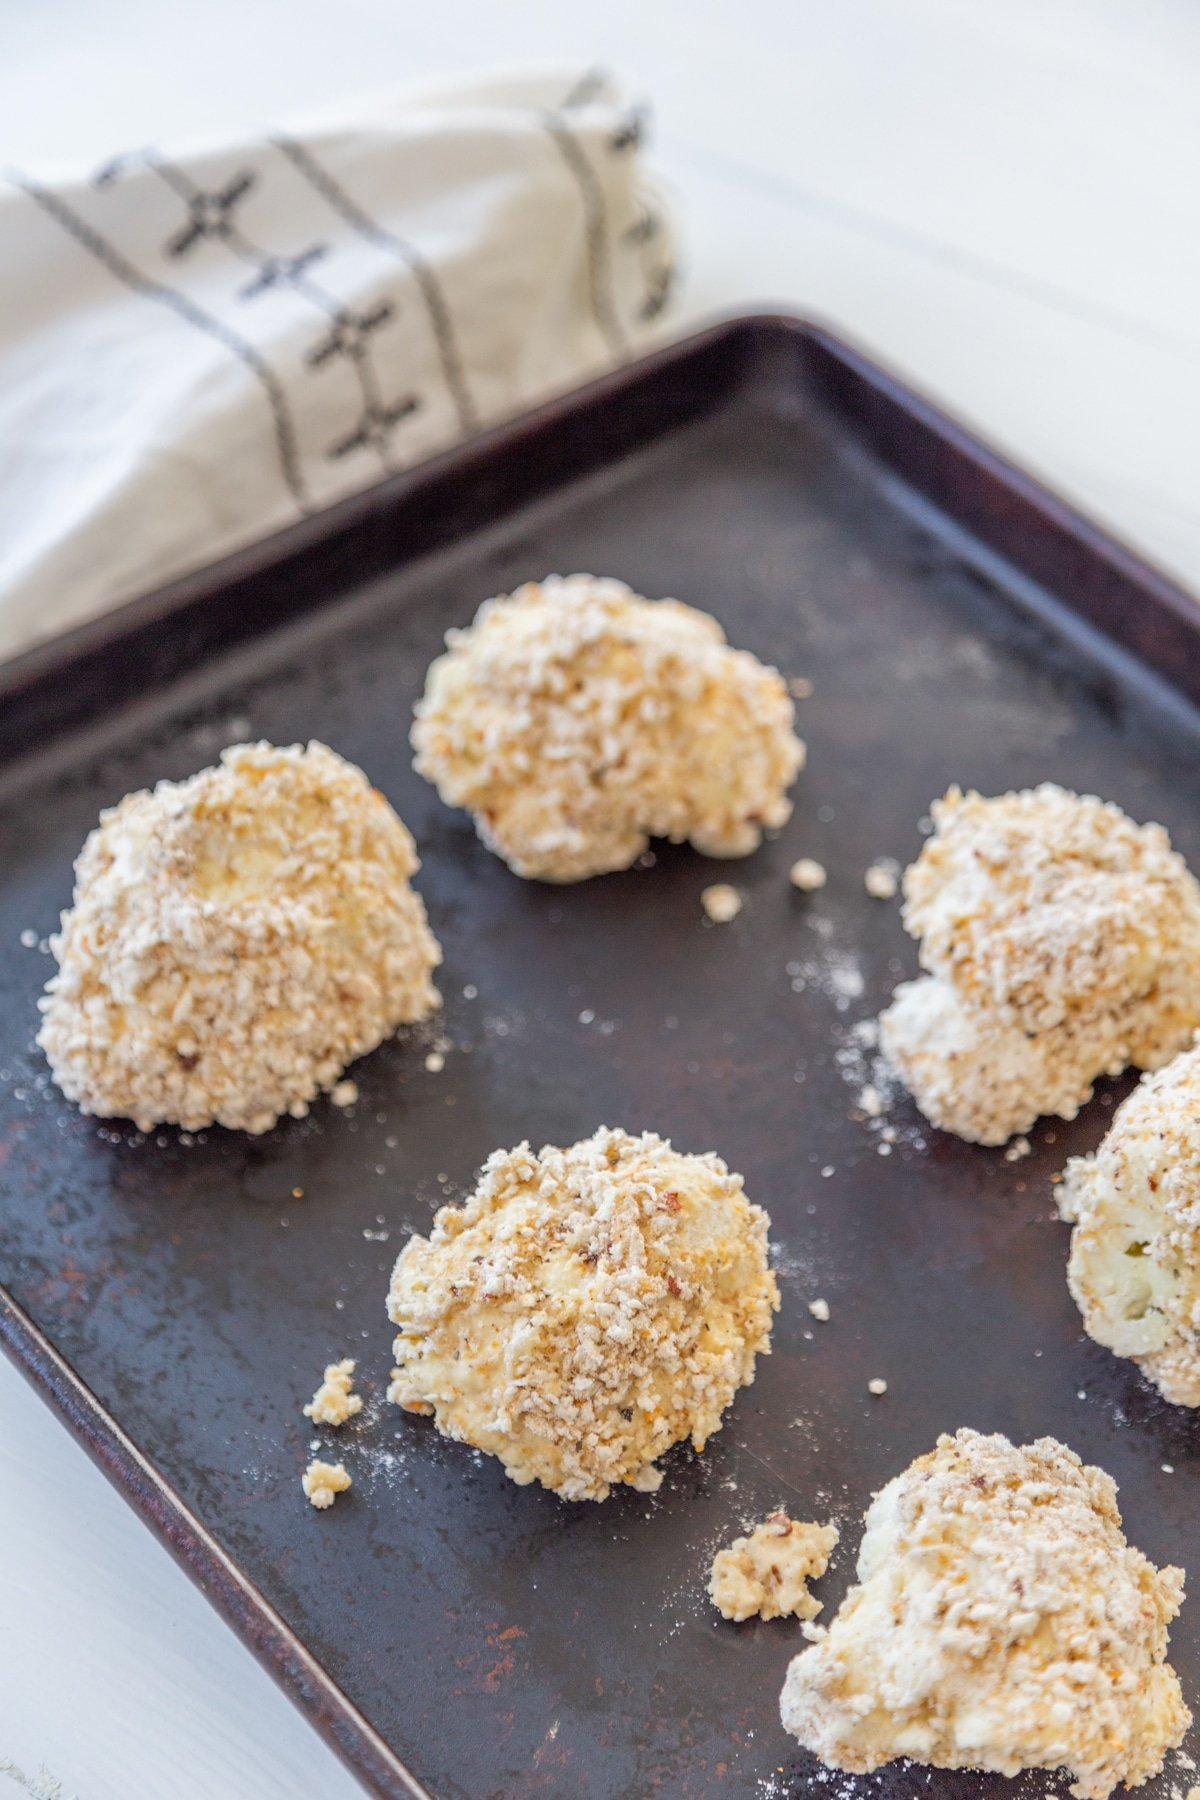 Unbaked cauliflower florets coated in flour and breadcrumbs on a cookie sheet with a white and black towel in the background.